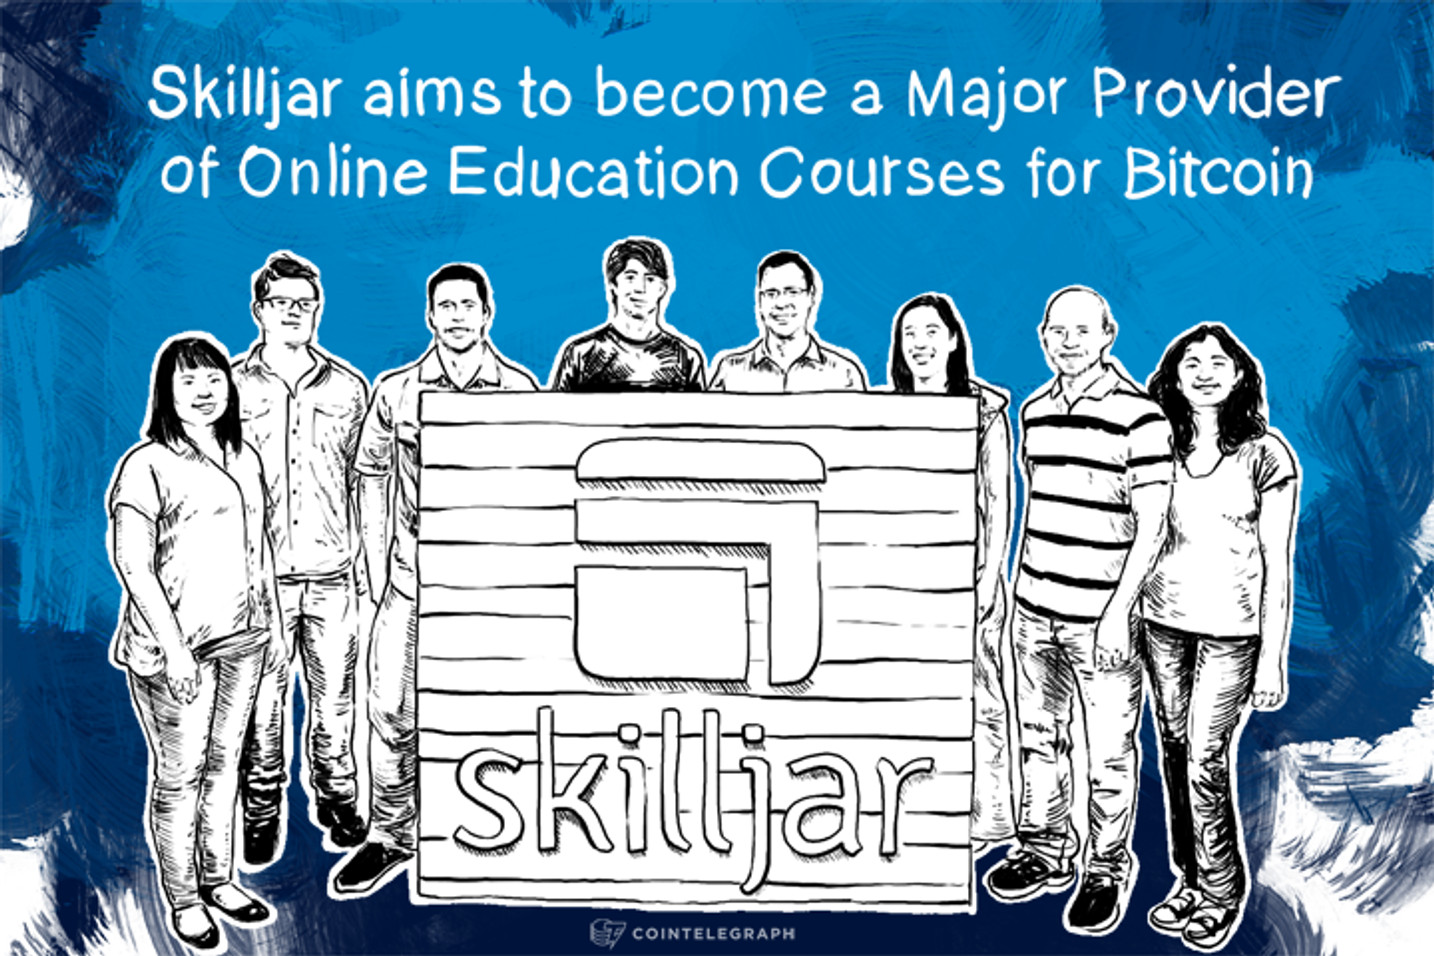 Skilljar aims to become a Major Provider of Online Education Courses for Bitcoin